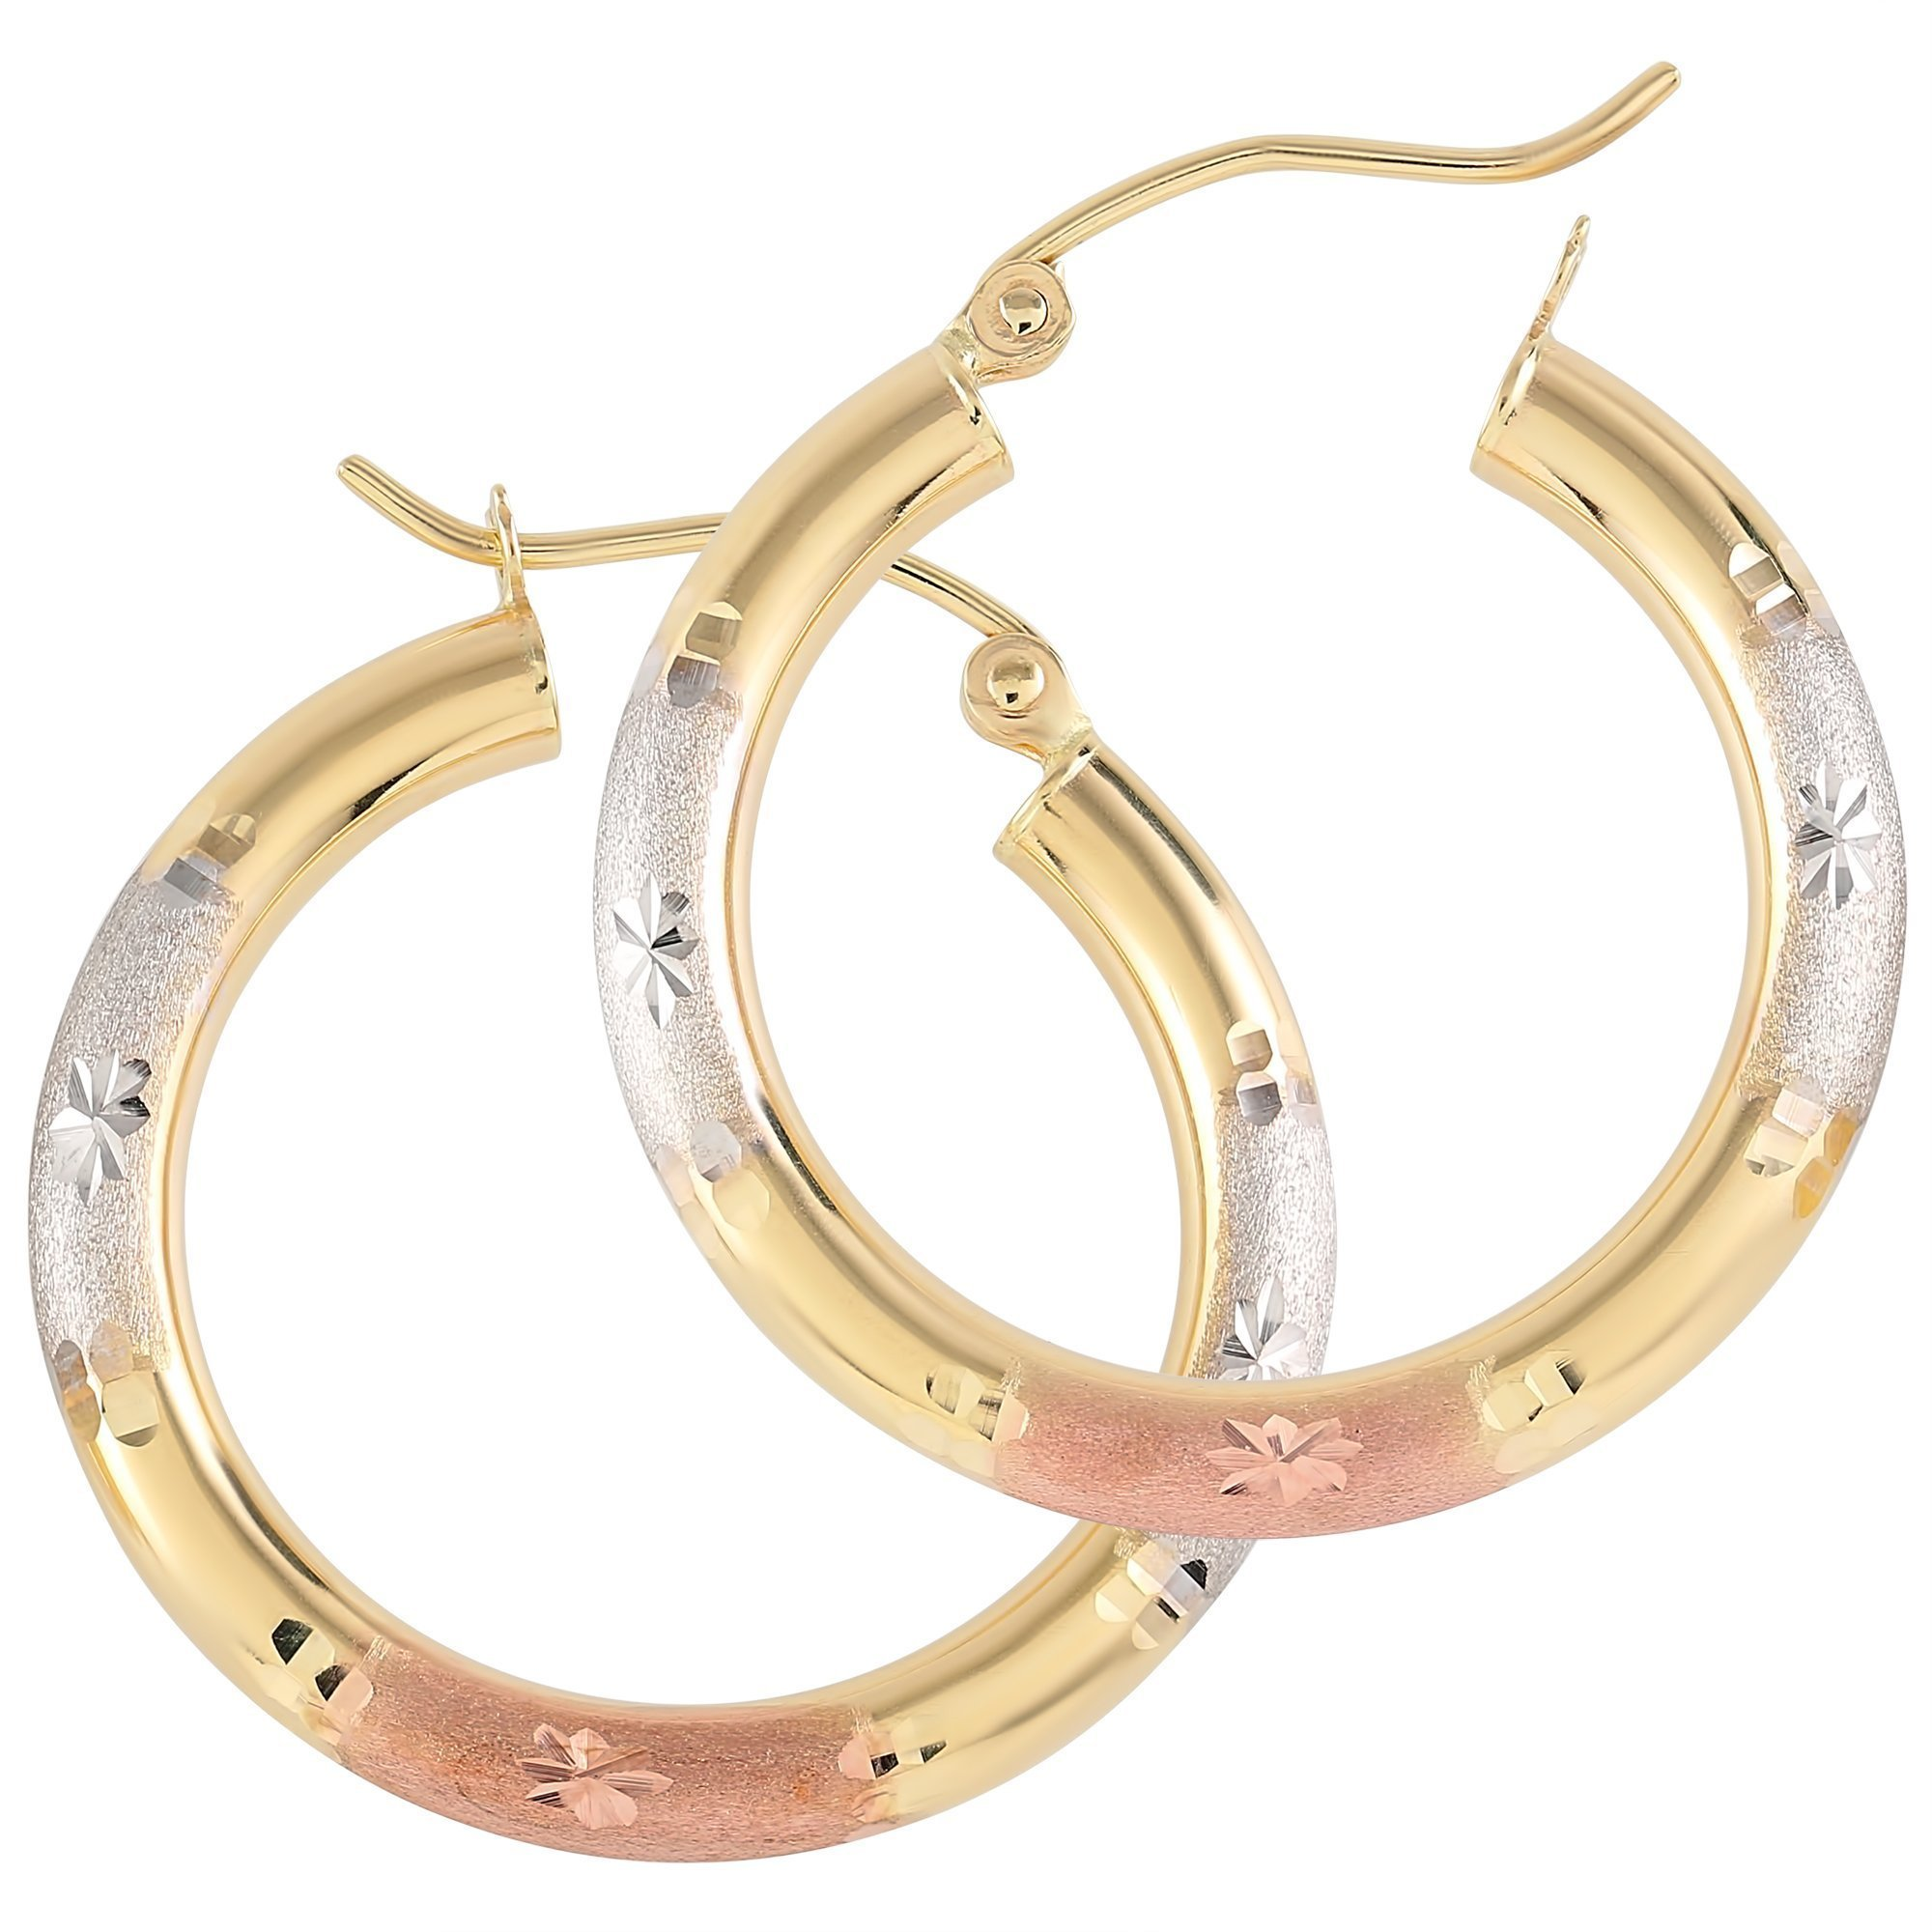 Balluccitoosi Tri Color Round Star Cut Hoop Earrings - 14k Gold Earring for Women and Girls - Unique Jewelry for Everyday